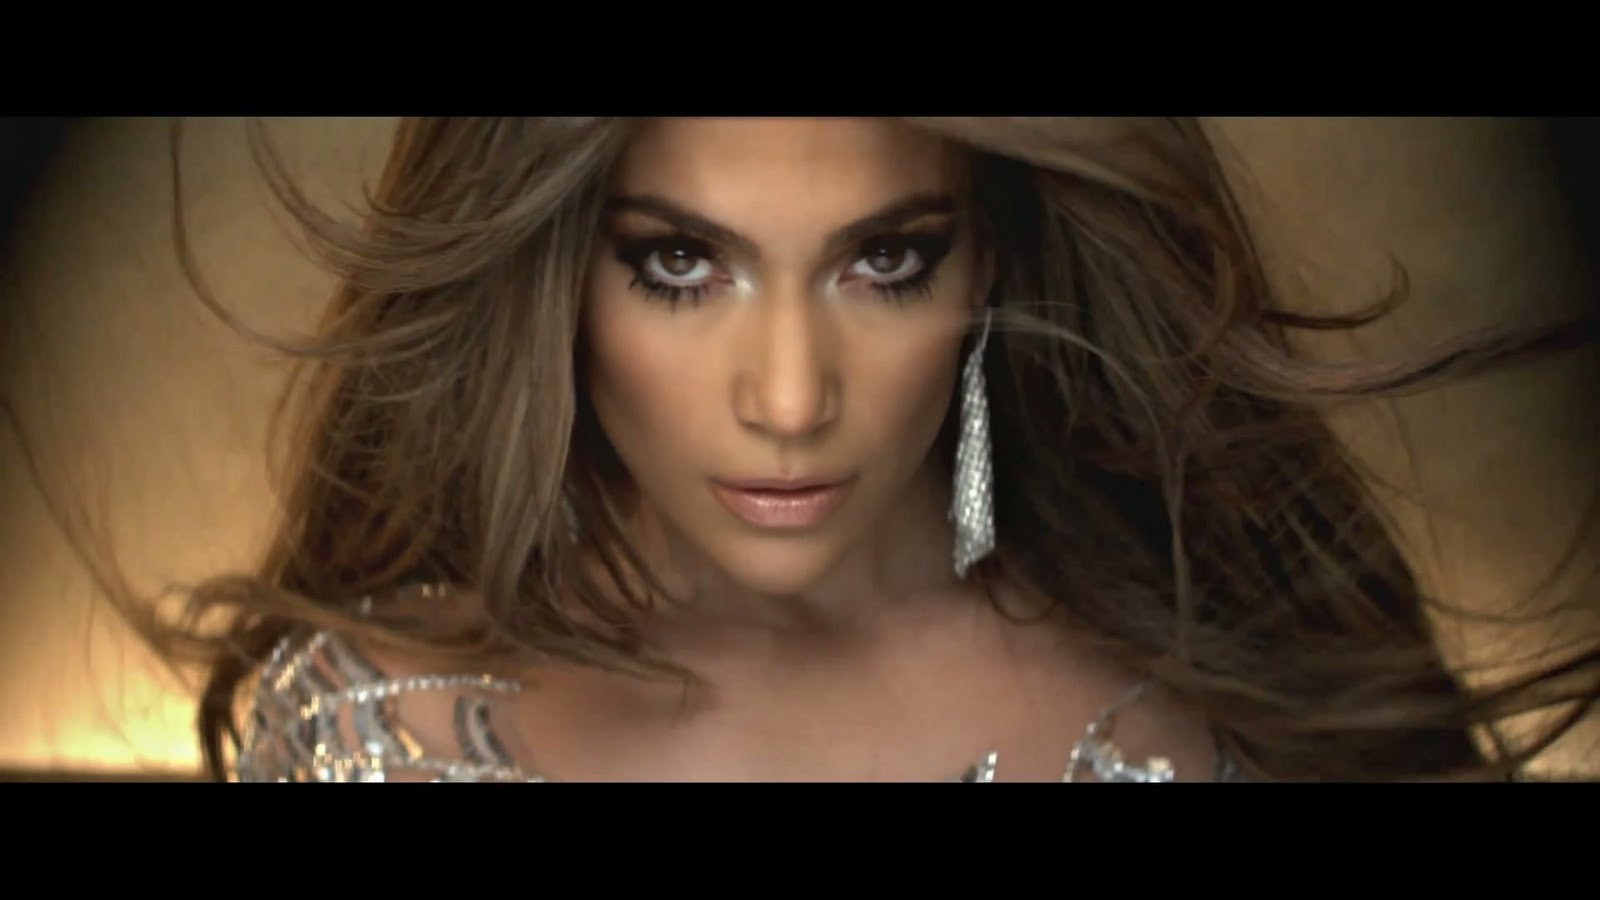 Get on the floor jennifer lopez mp3 song download 58 for 1234 get on the dance floor song mp3